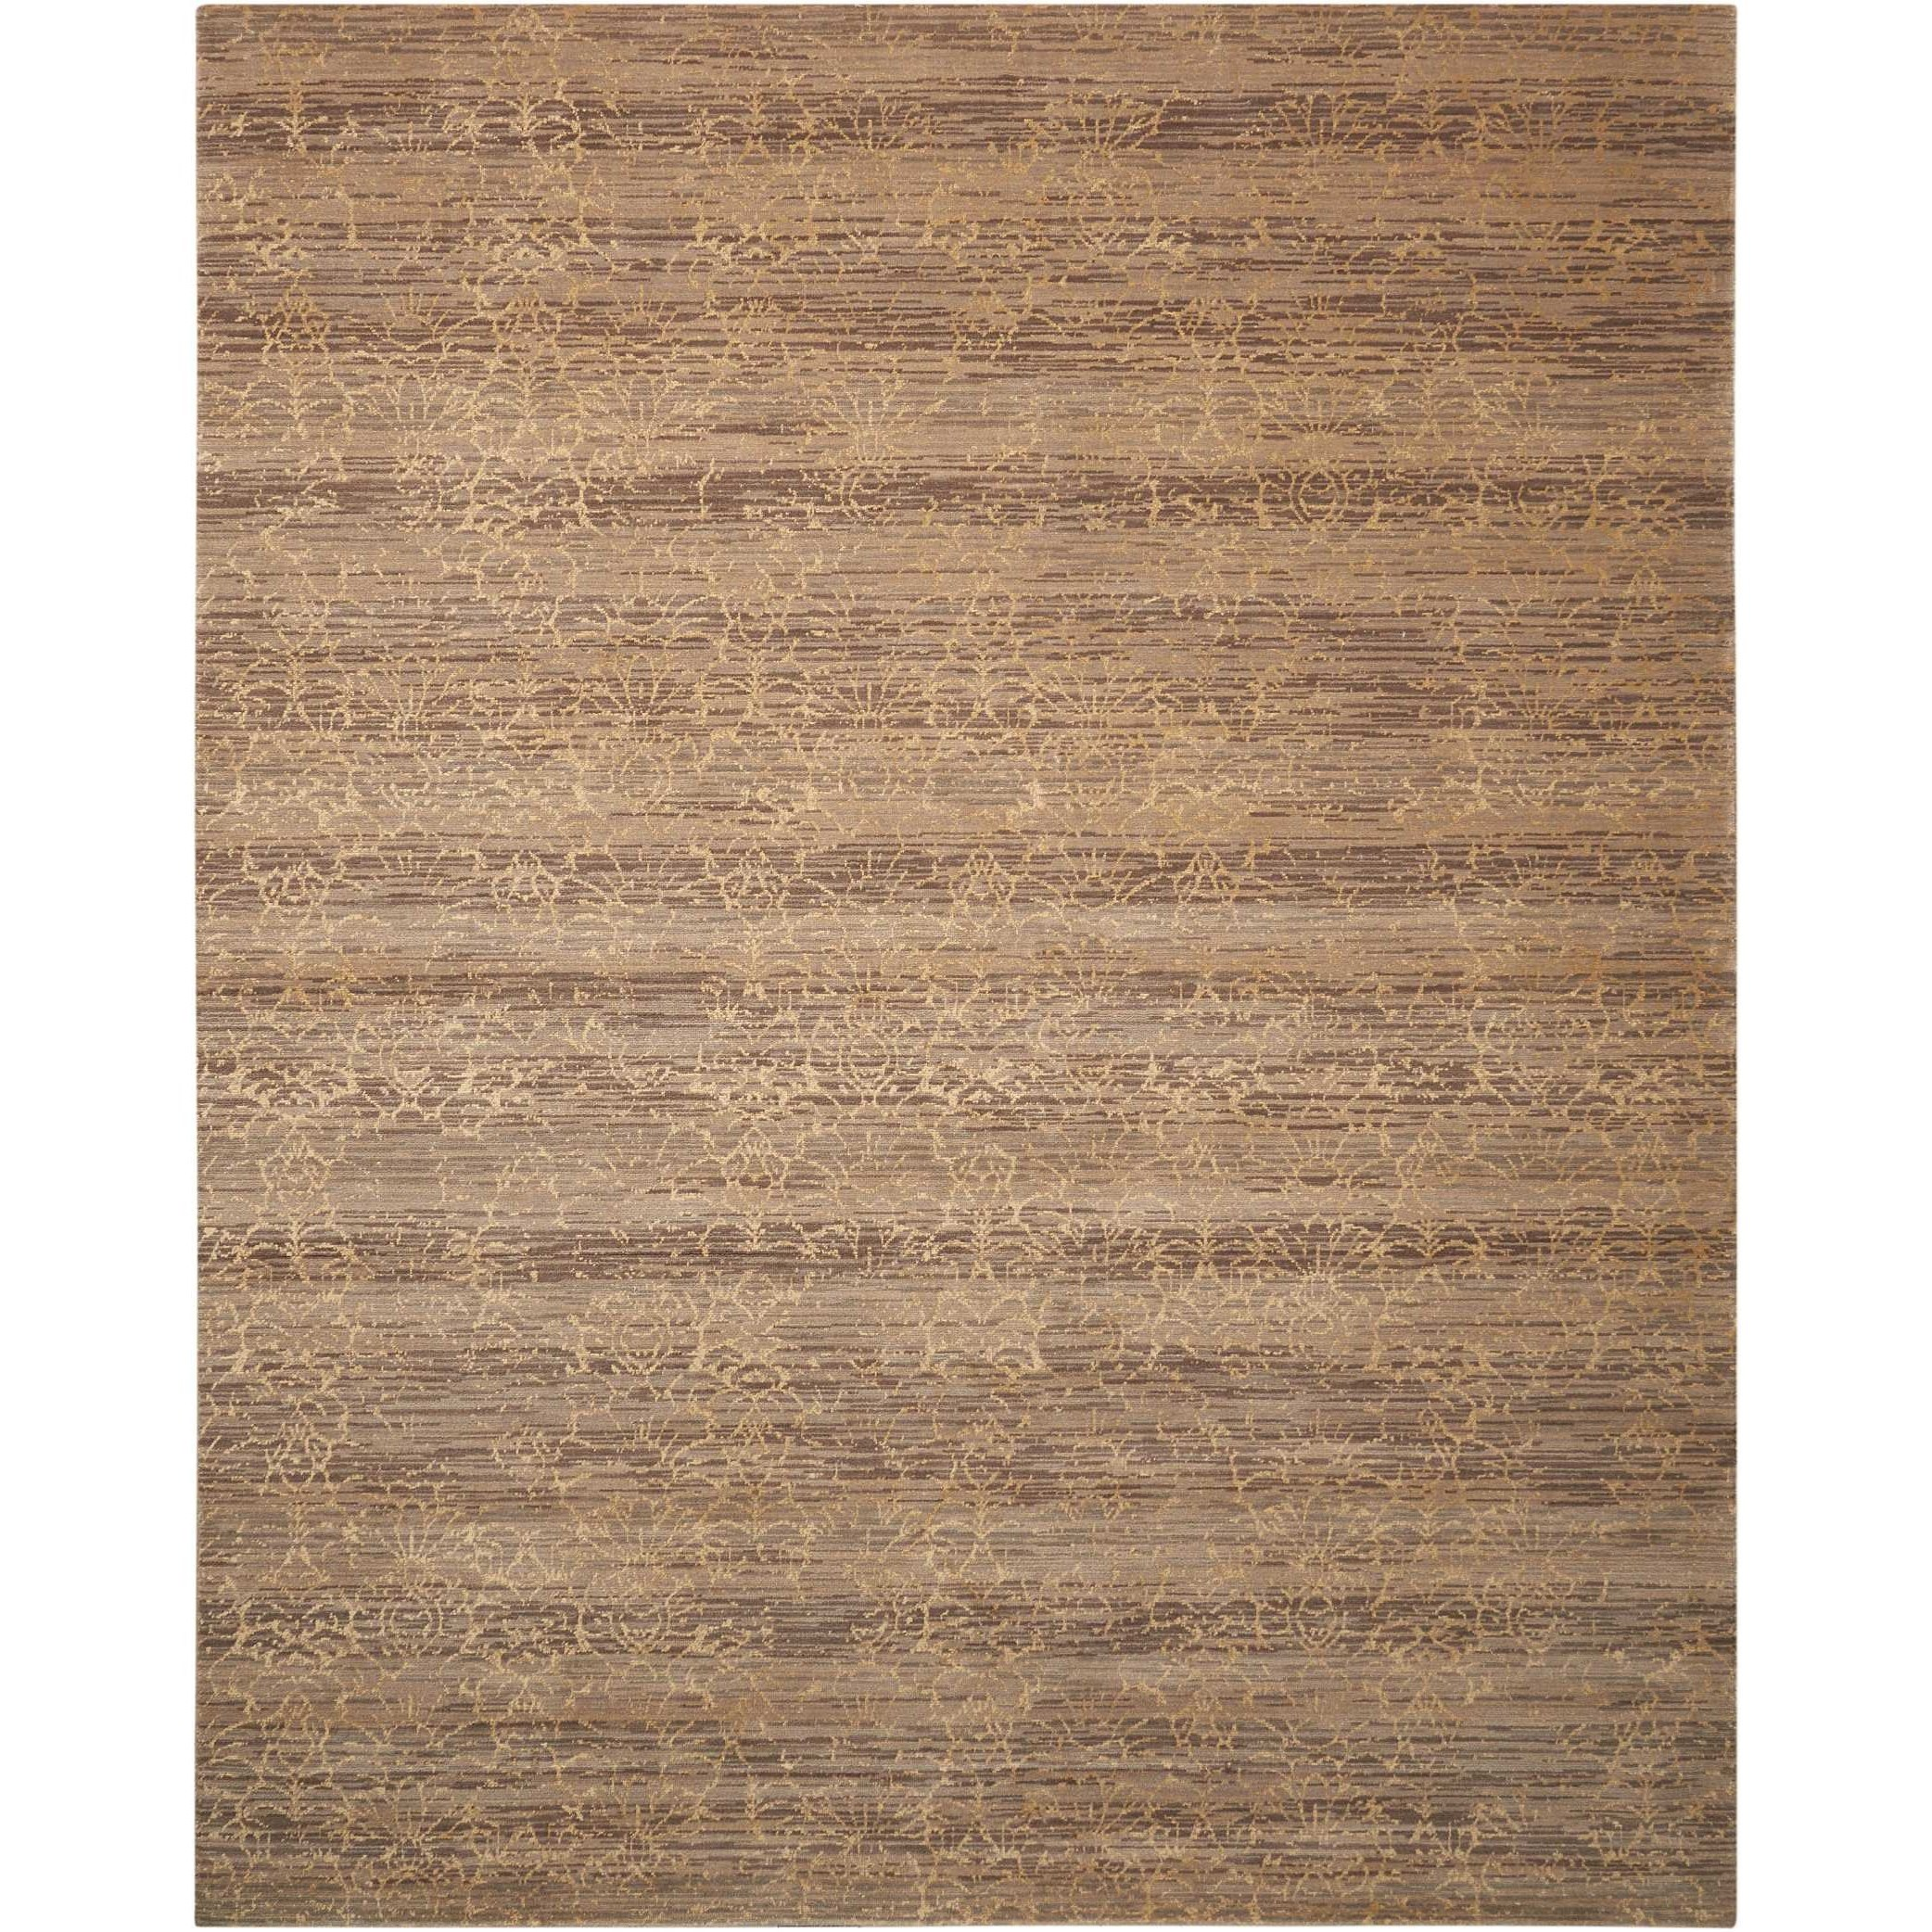 "Silken Allure 9'9"" x 13' Latte Rectangle Rug by Nourison at Adcock Furniture"